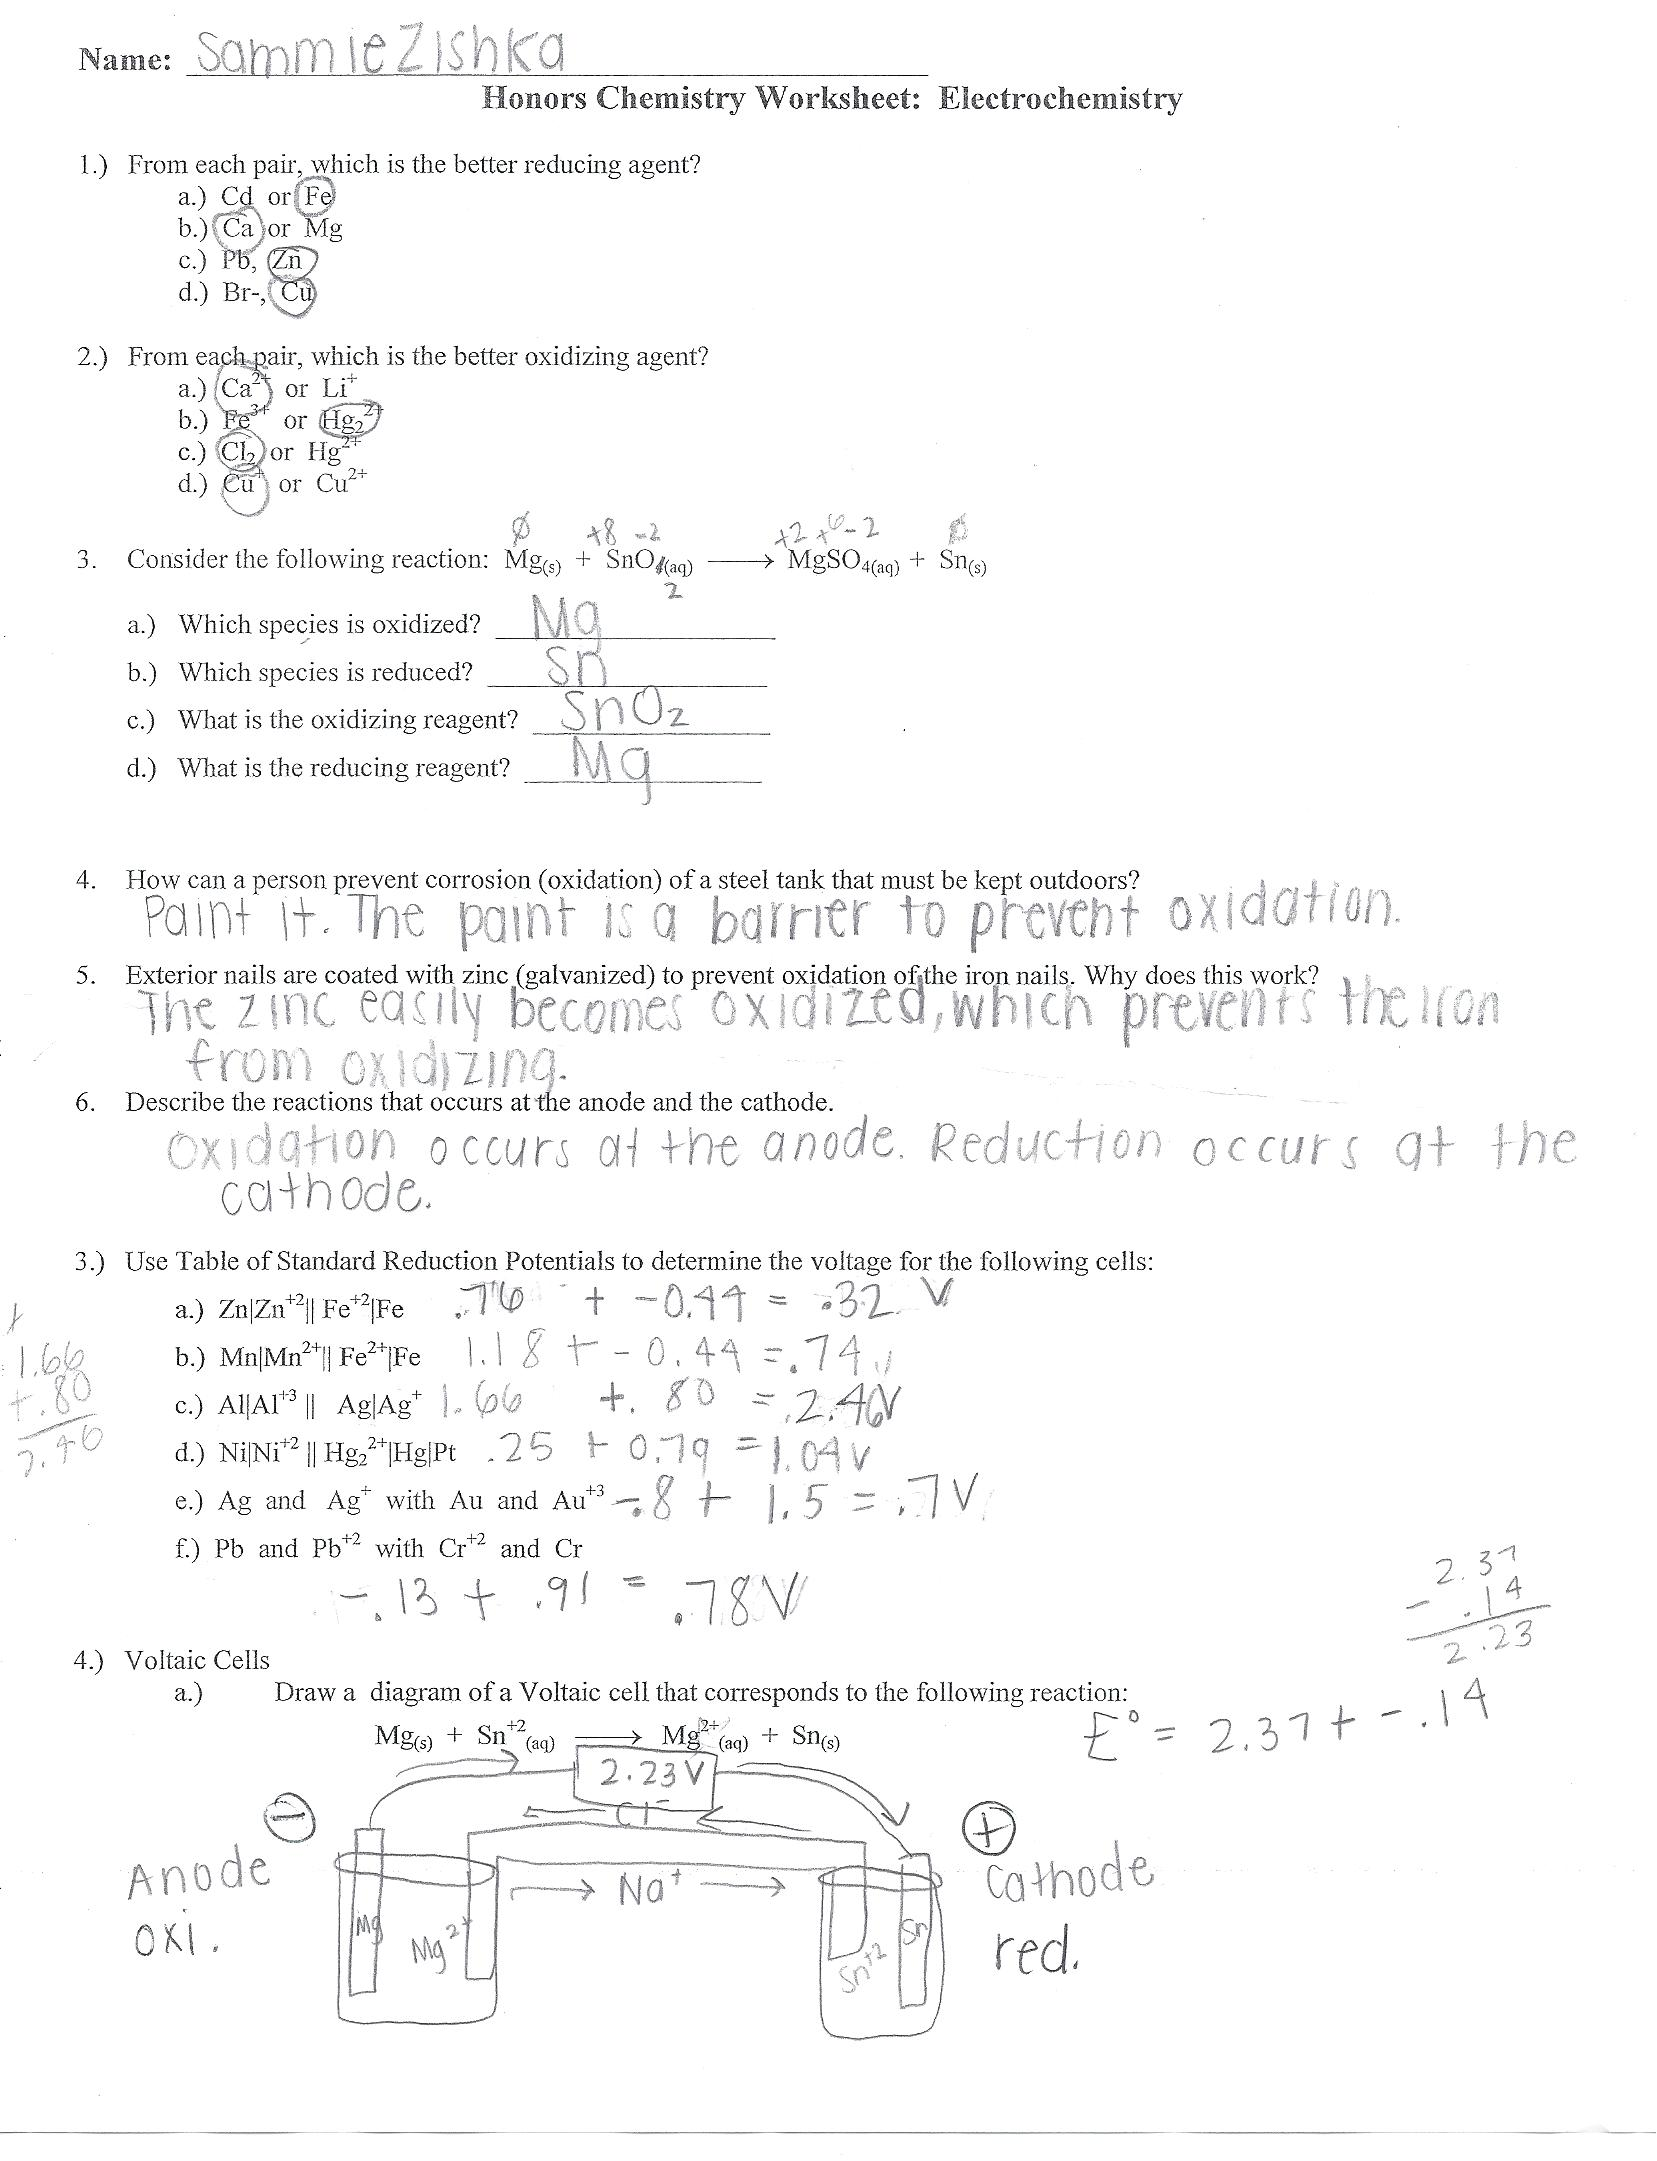 Nuclear Decay Worksheet With Answers